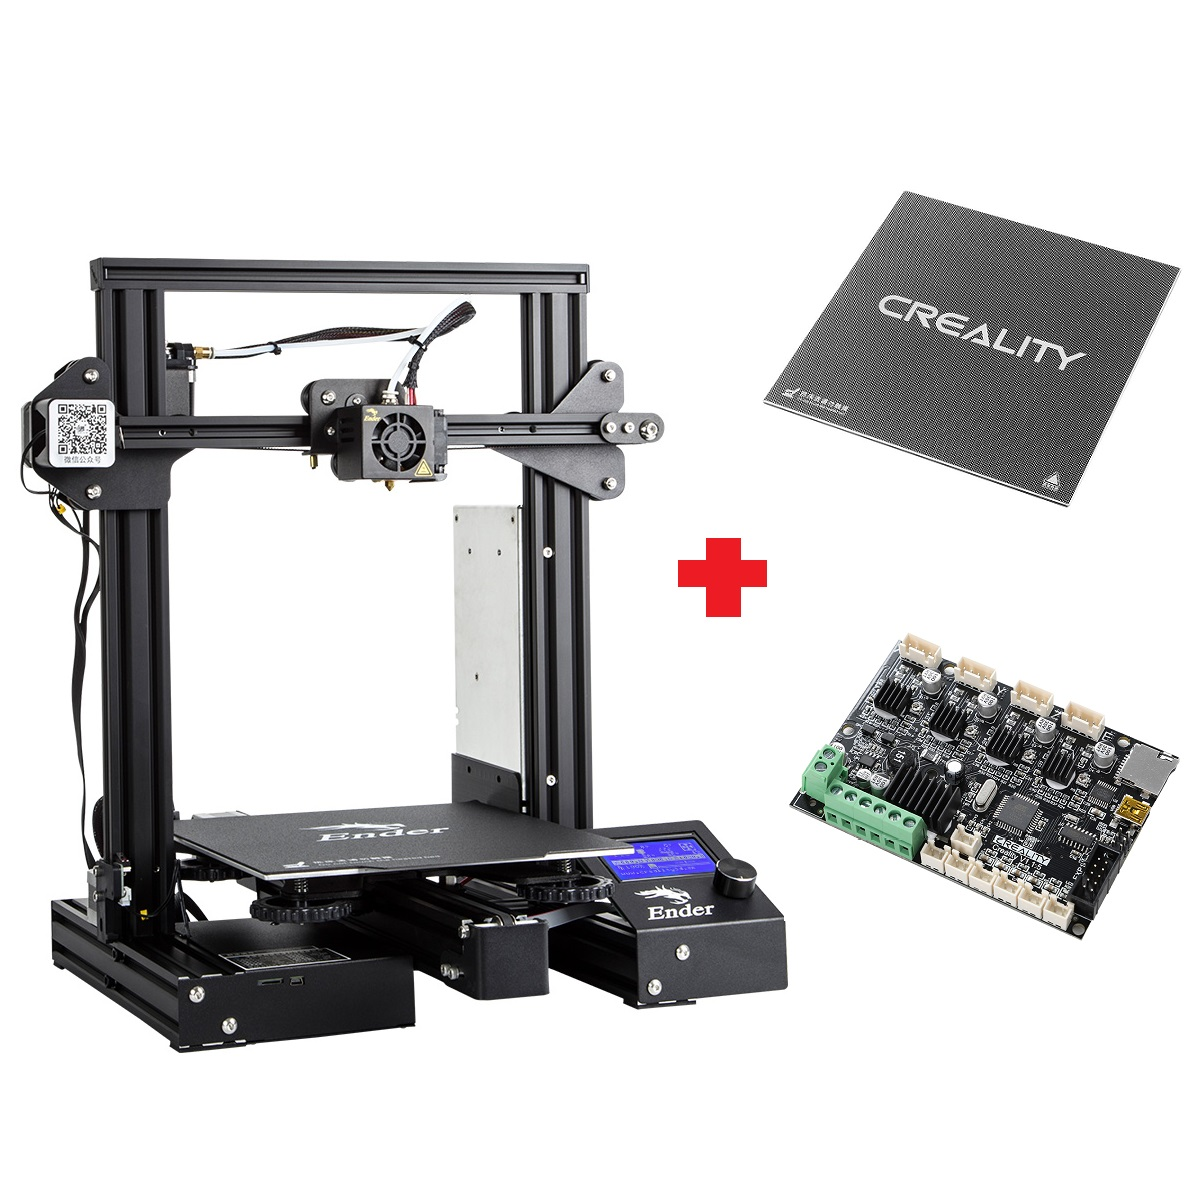 Creality 3D® Customized Version Ender-3Xs Pro 3D Printer (Ender-3Xs Pro) 2